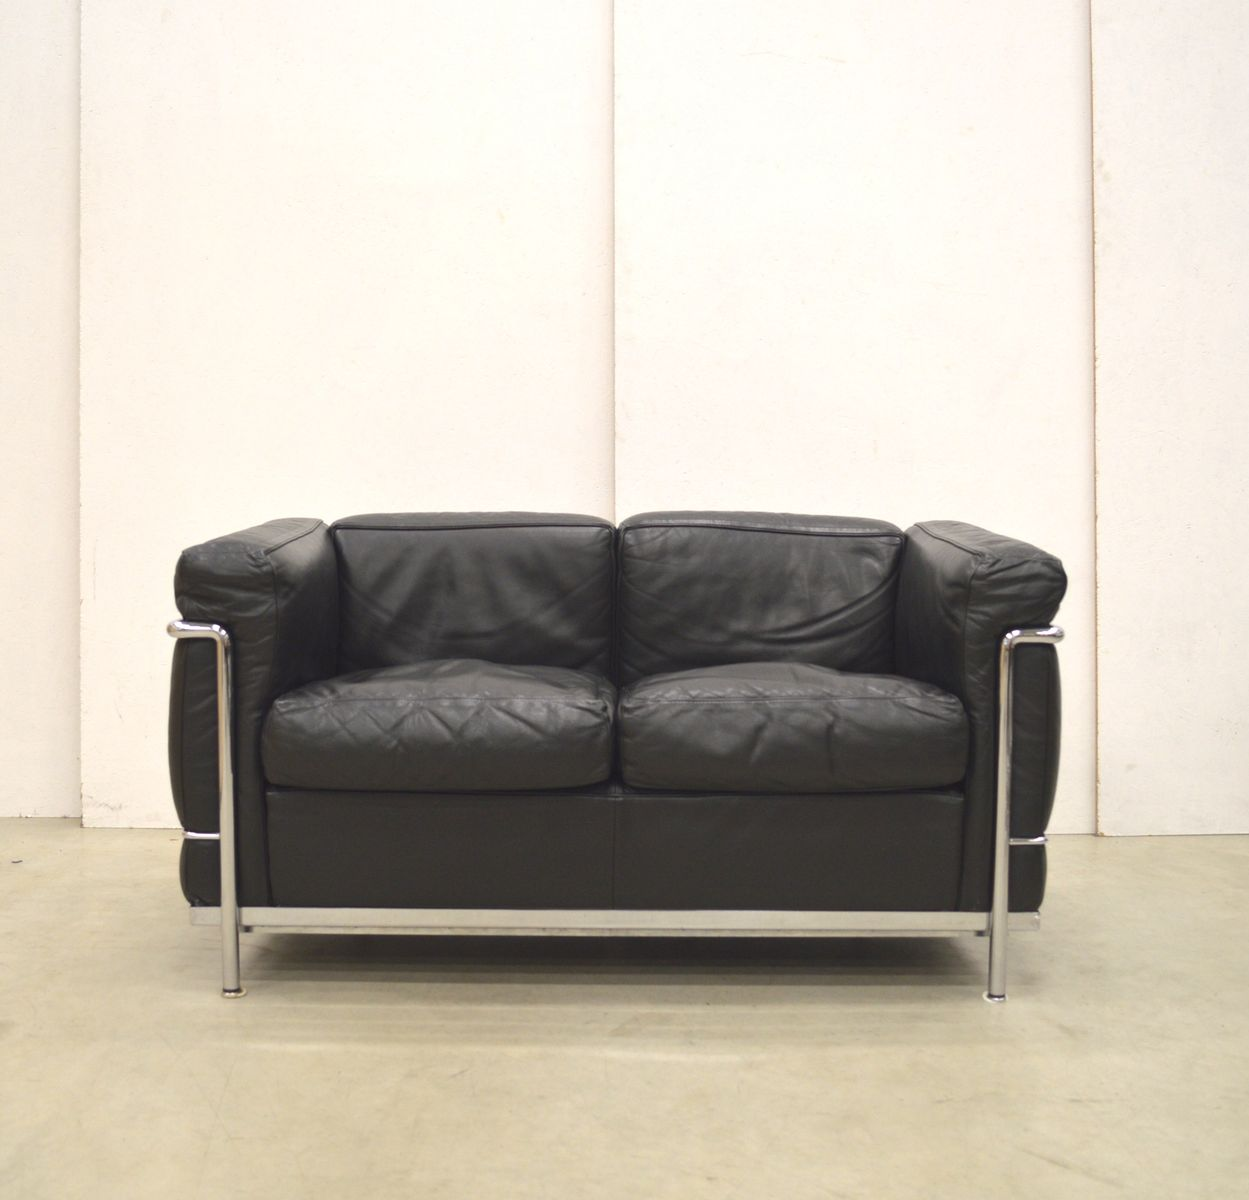 lc2 sofa von le corbusier f r cassina 1980er bei pamono kaufen. Black Bedroom Furniture Sets. Home Design Ideas